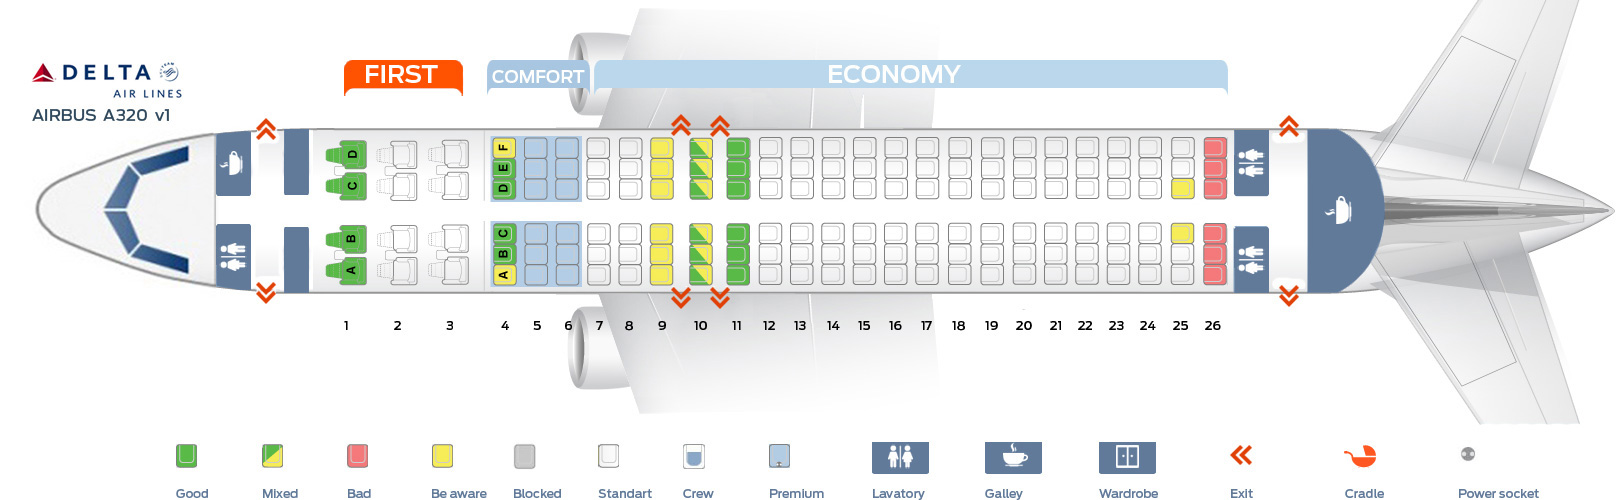 Seat_map_Delta_Airlines_Airbus_A320_ver1